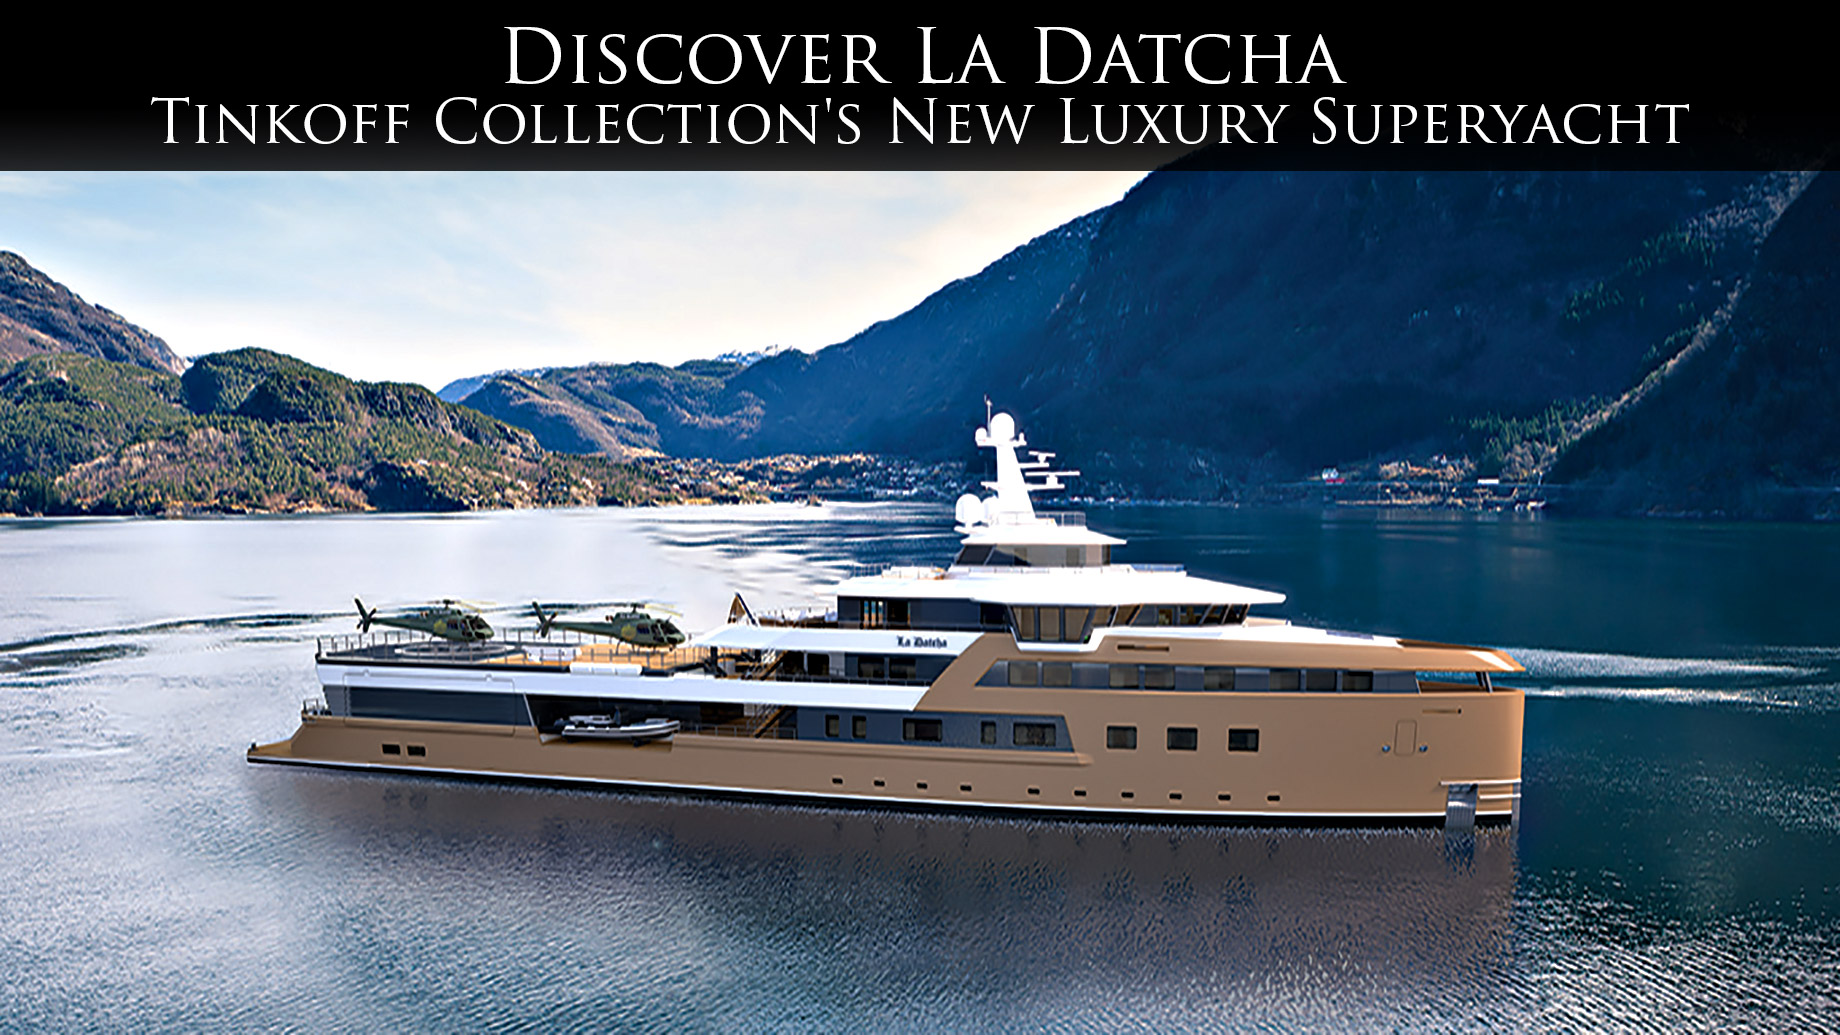 Discover La Datcha - Tinkoff Collection's New Luxury Superyacht